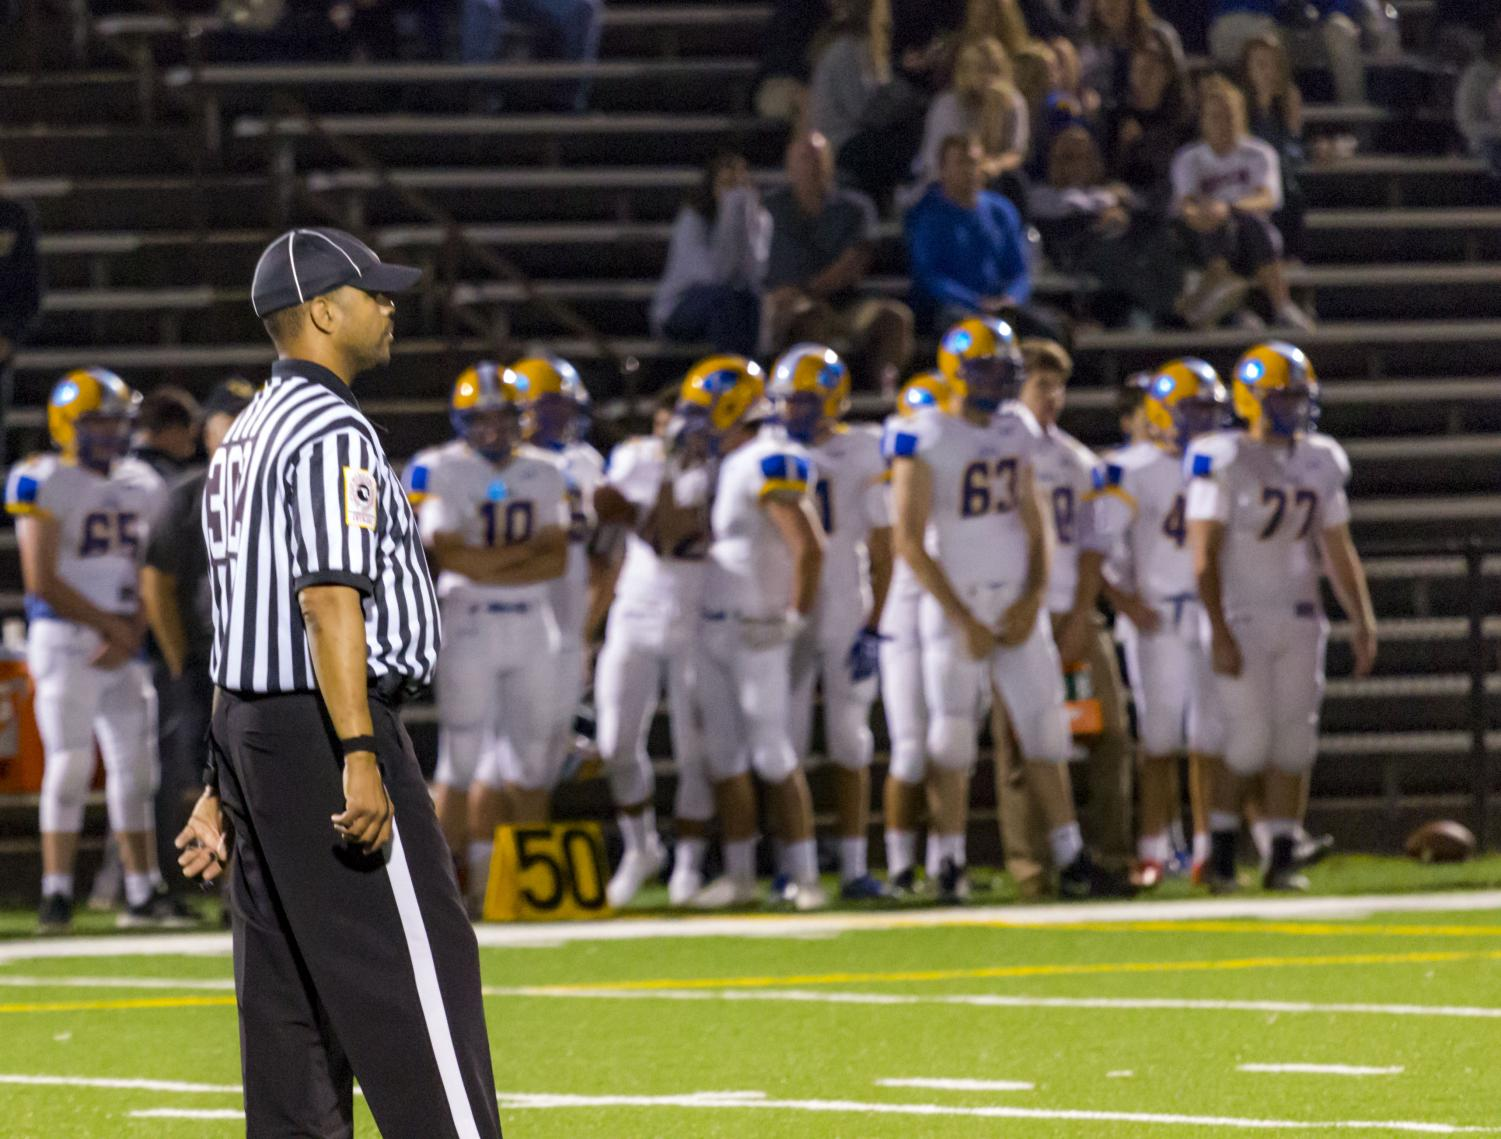 A referee focuses on a play during a JC football game versus Loyola Blakefield on Friday, Sept. 8. Every call referees make is judged by players, coaches and fans alike.